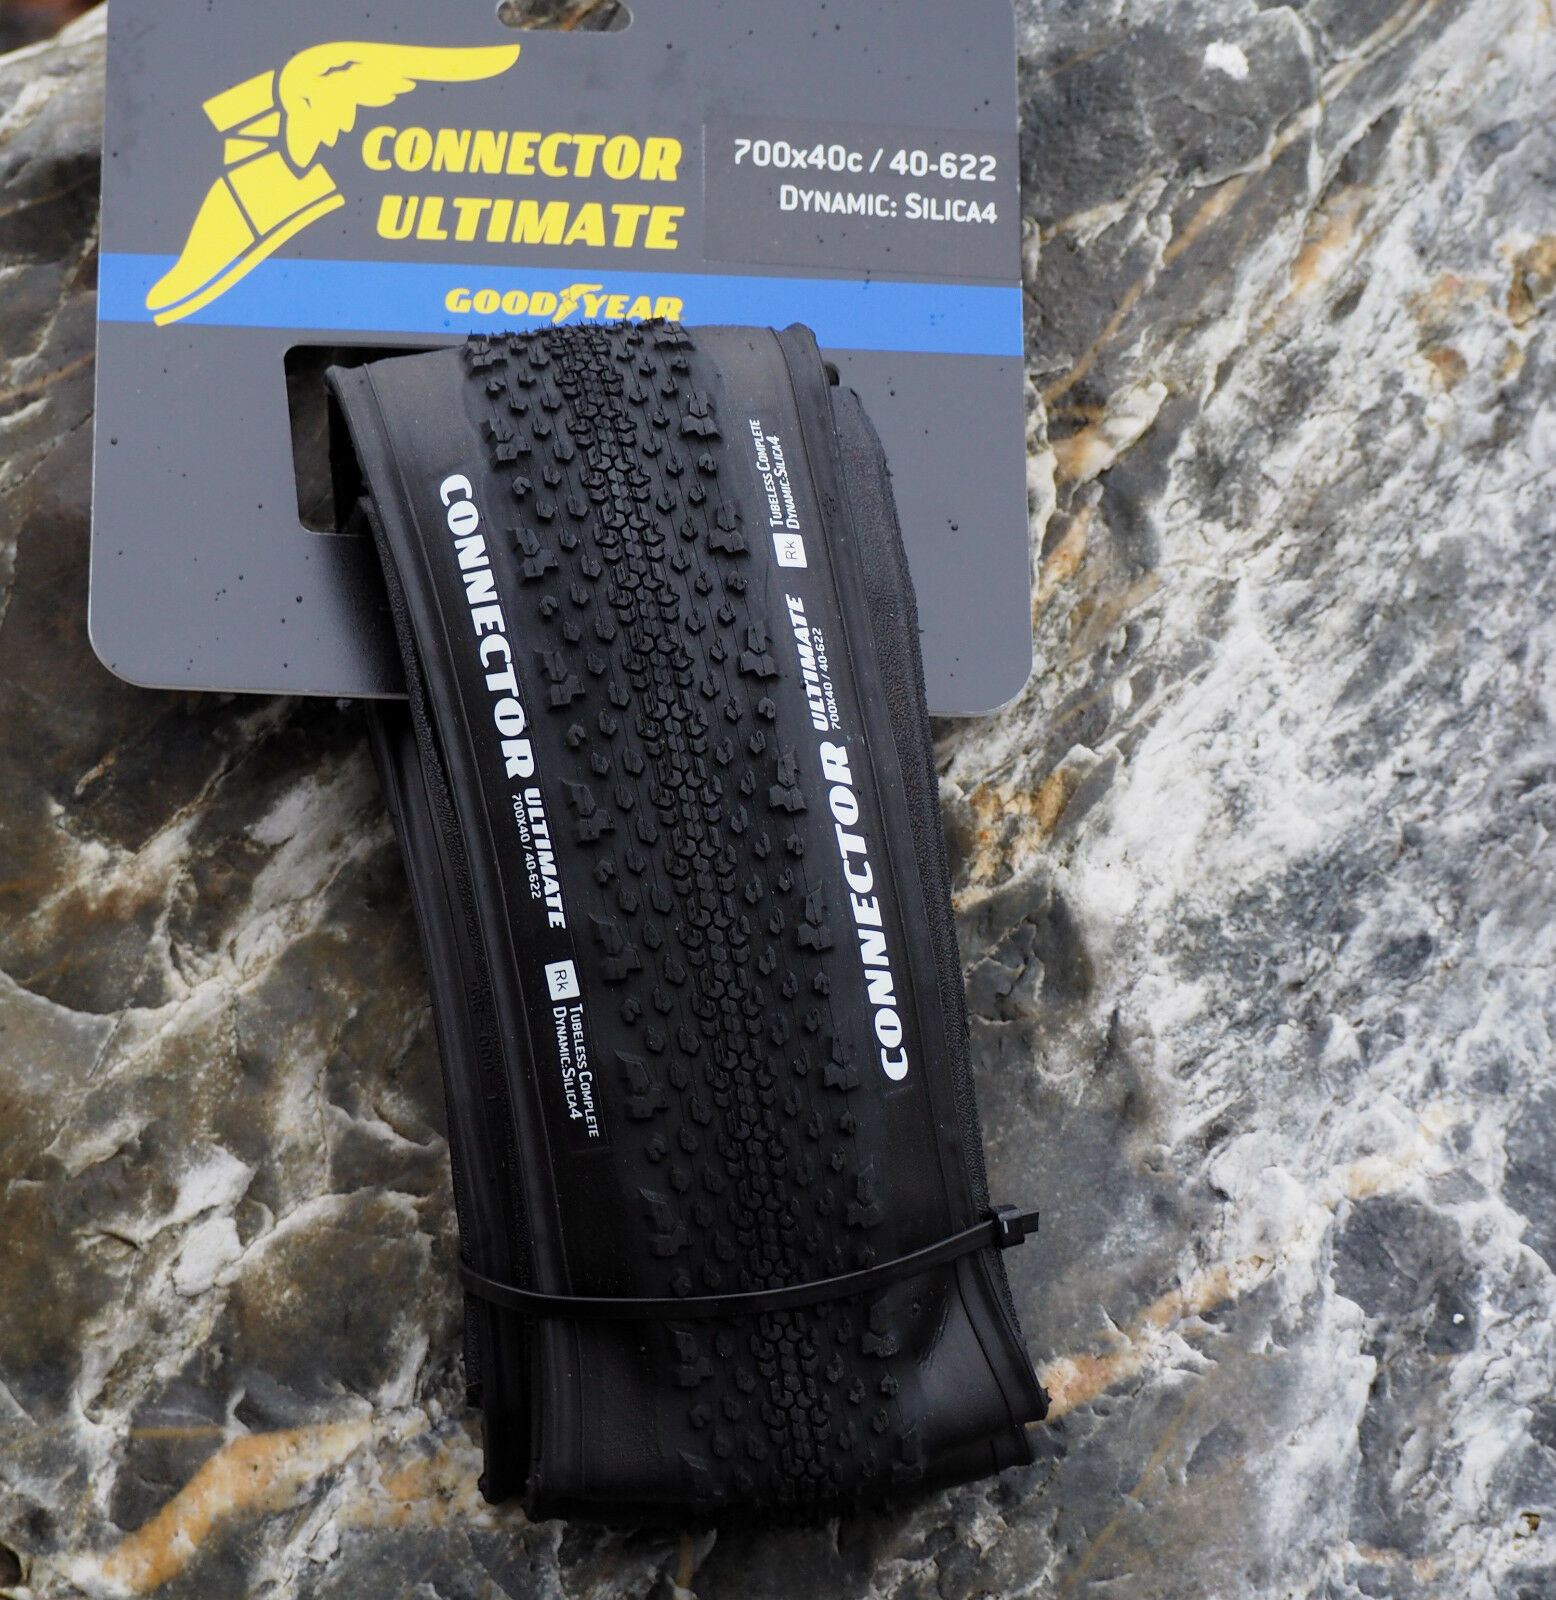 Good Year Connector Ultimate , , , Reifen , Gravelbike , Cyclocross 589366